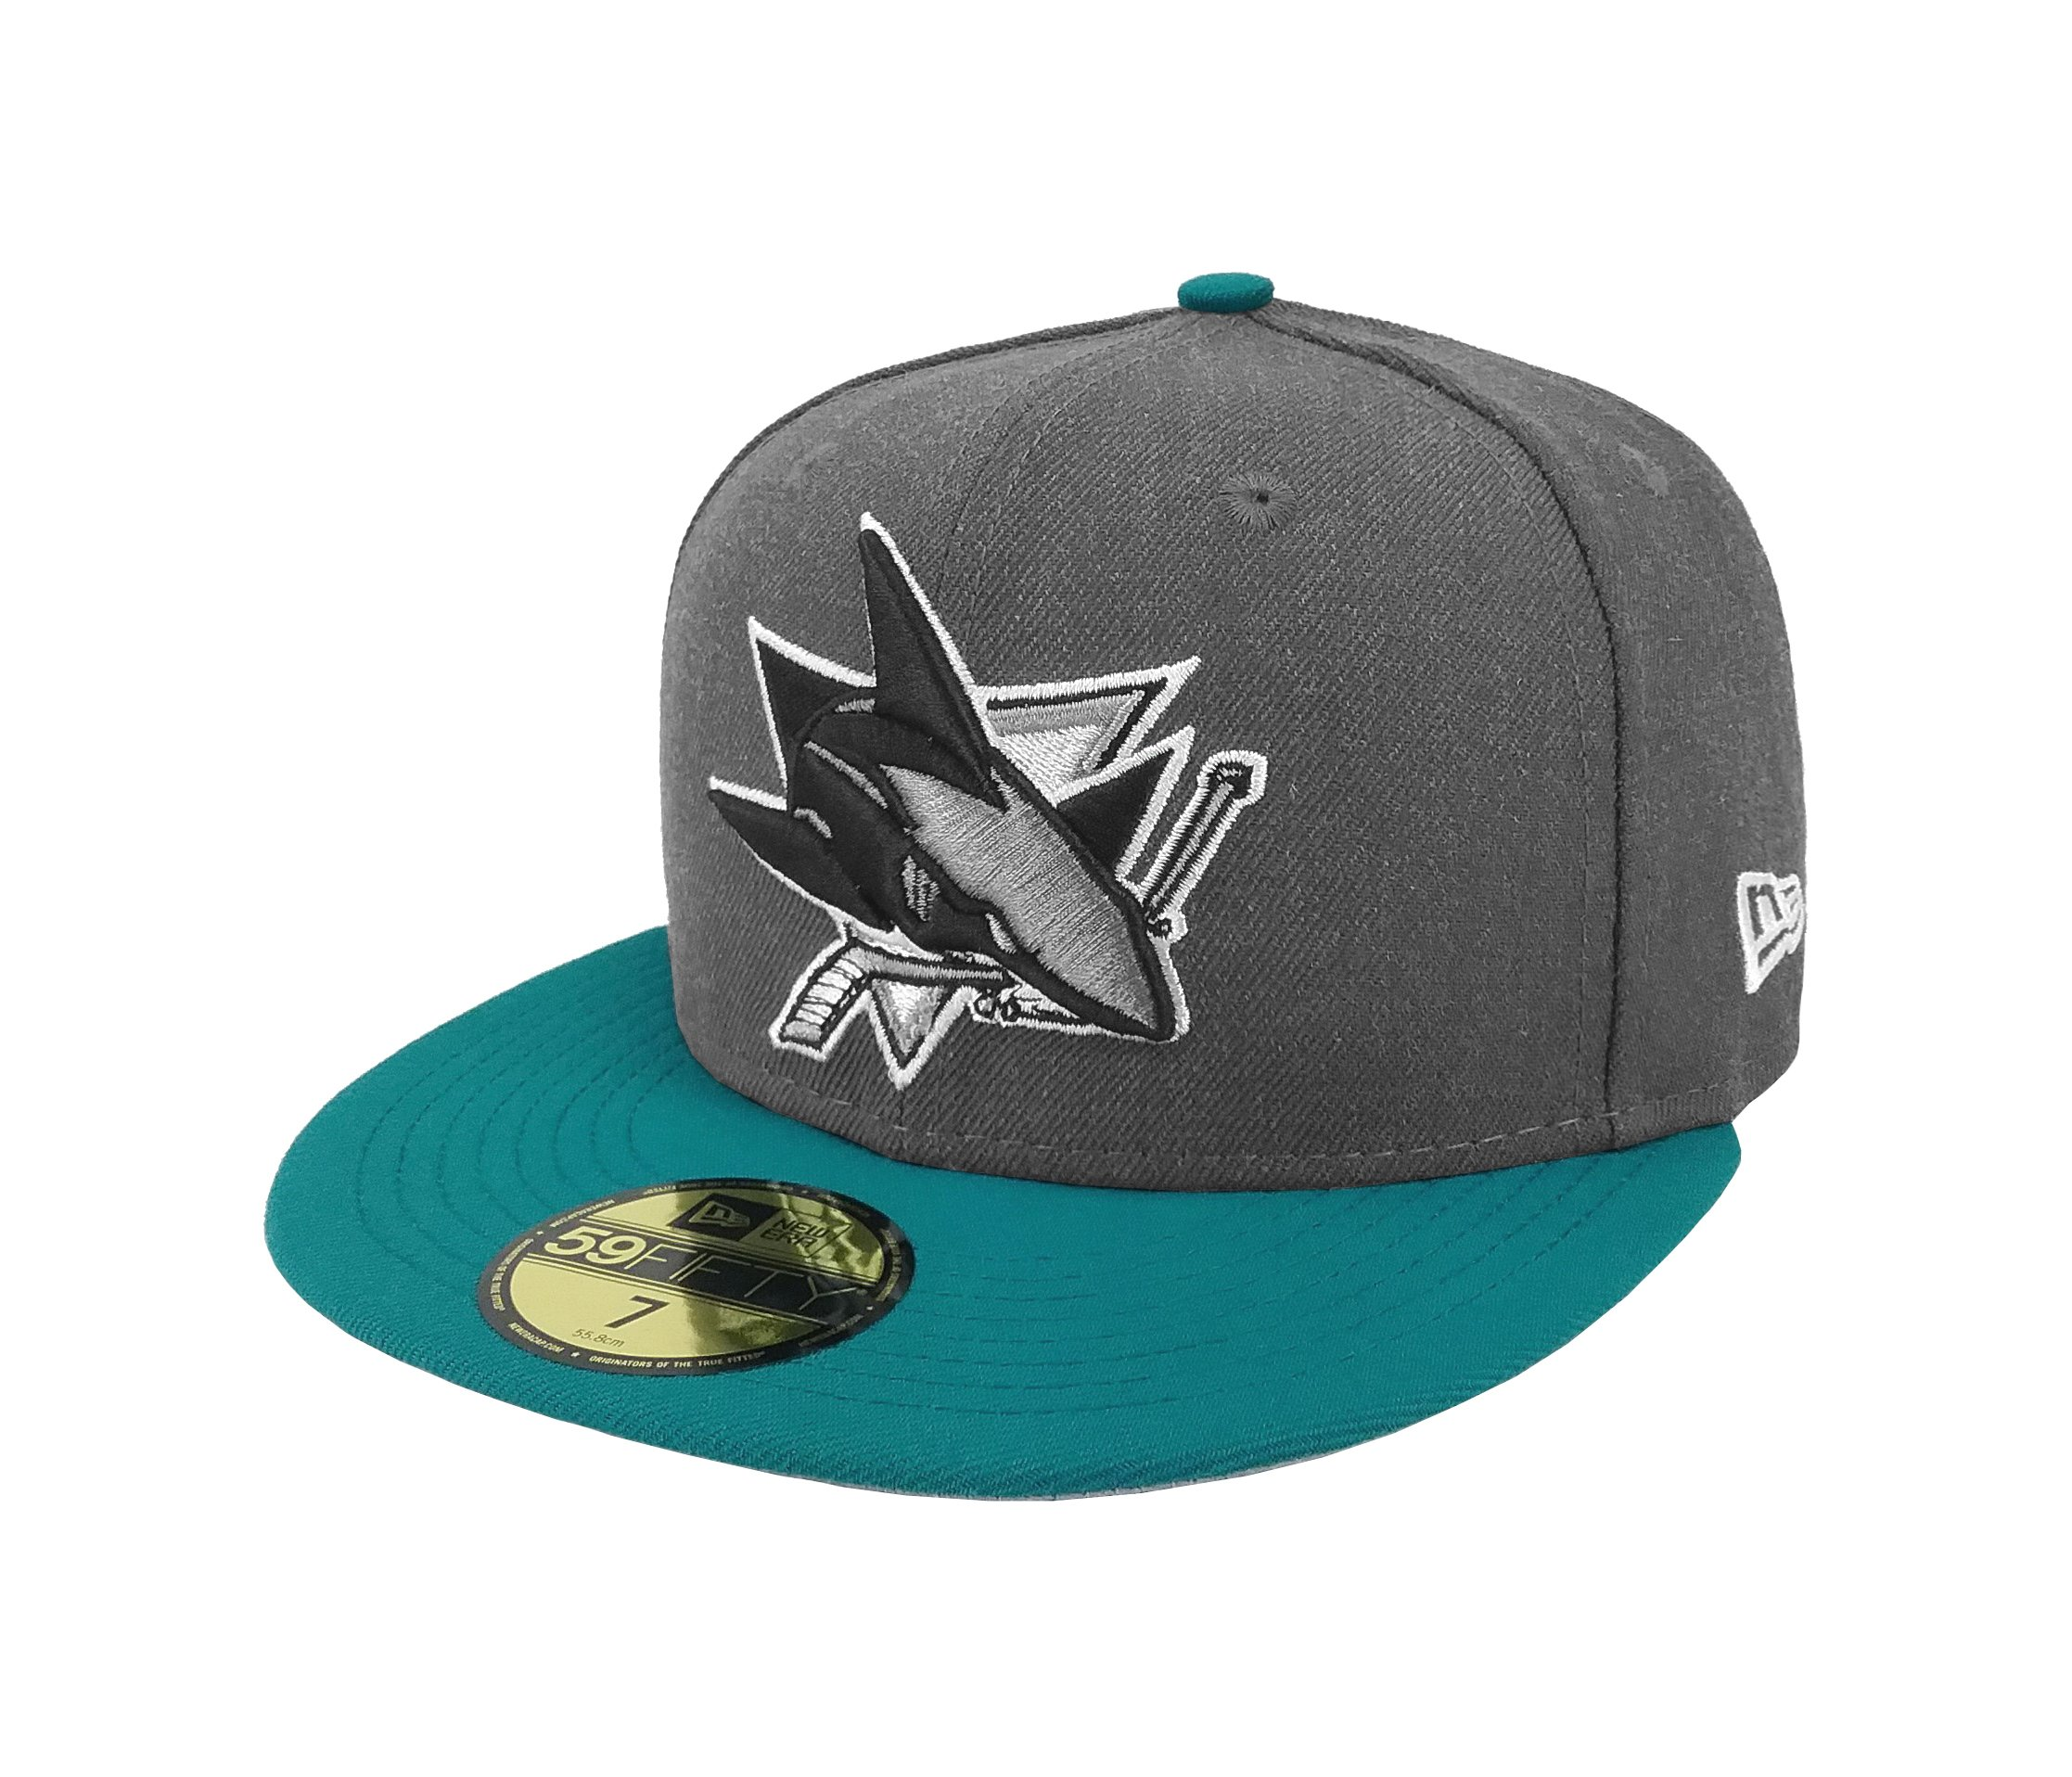 New Era 59Fifty Hat NHL San Jose Sharks Shader Melt 2 Charcoal Turquoise Cap  (7) Apparel a427e5f89707